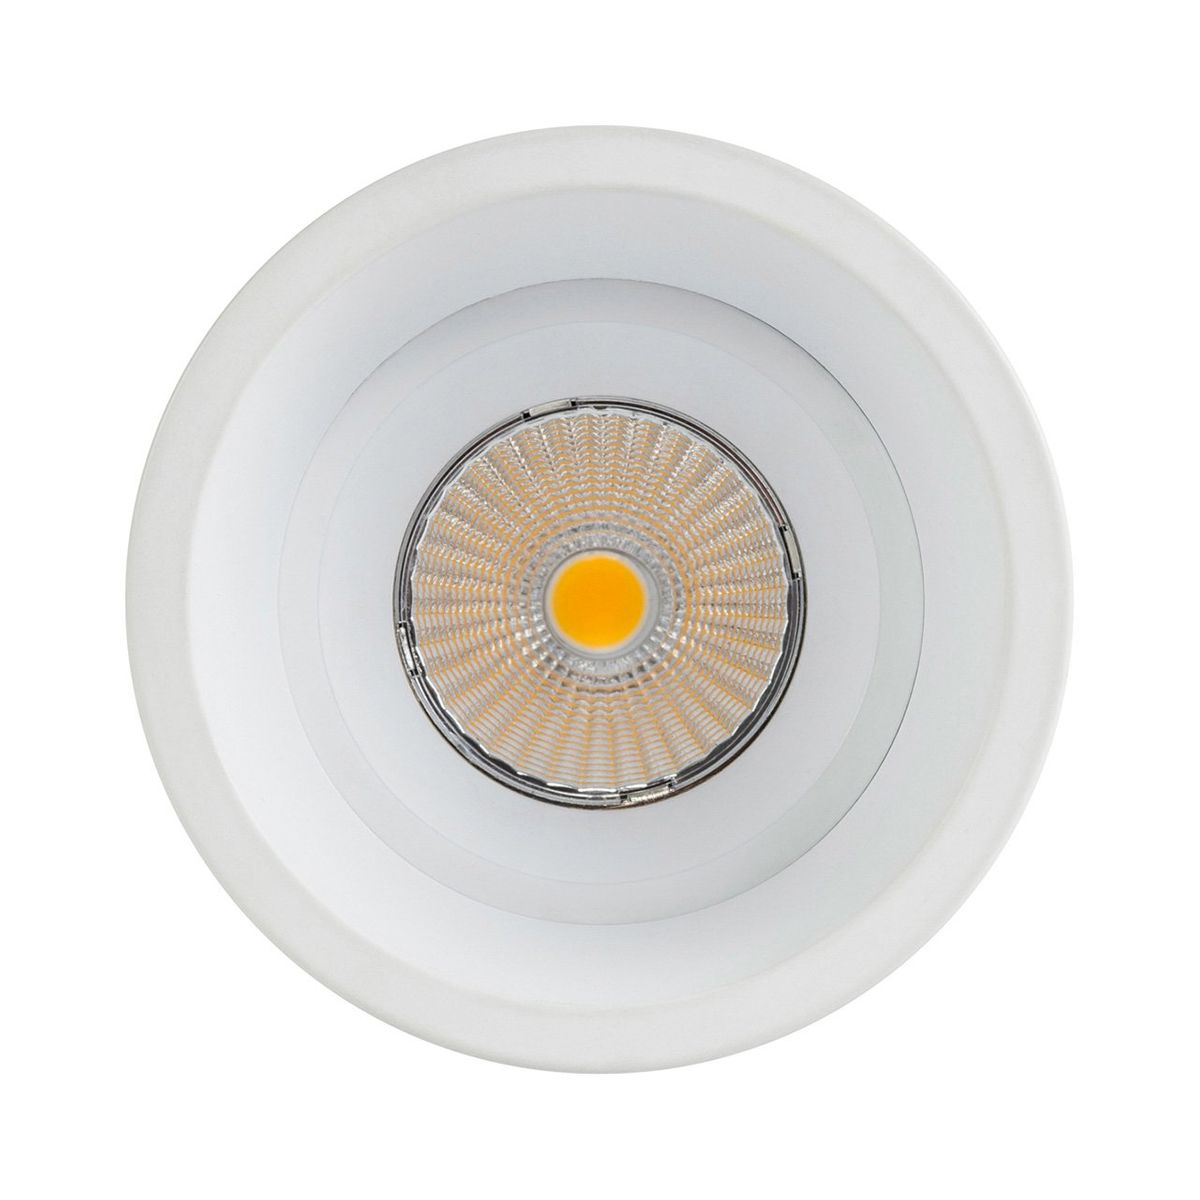 HV5513-WHT - PRIME White Fixed Deep LED Downlight – Bild 3